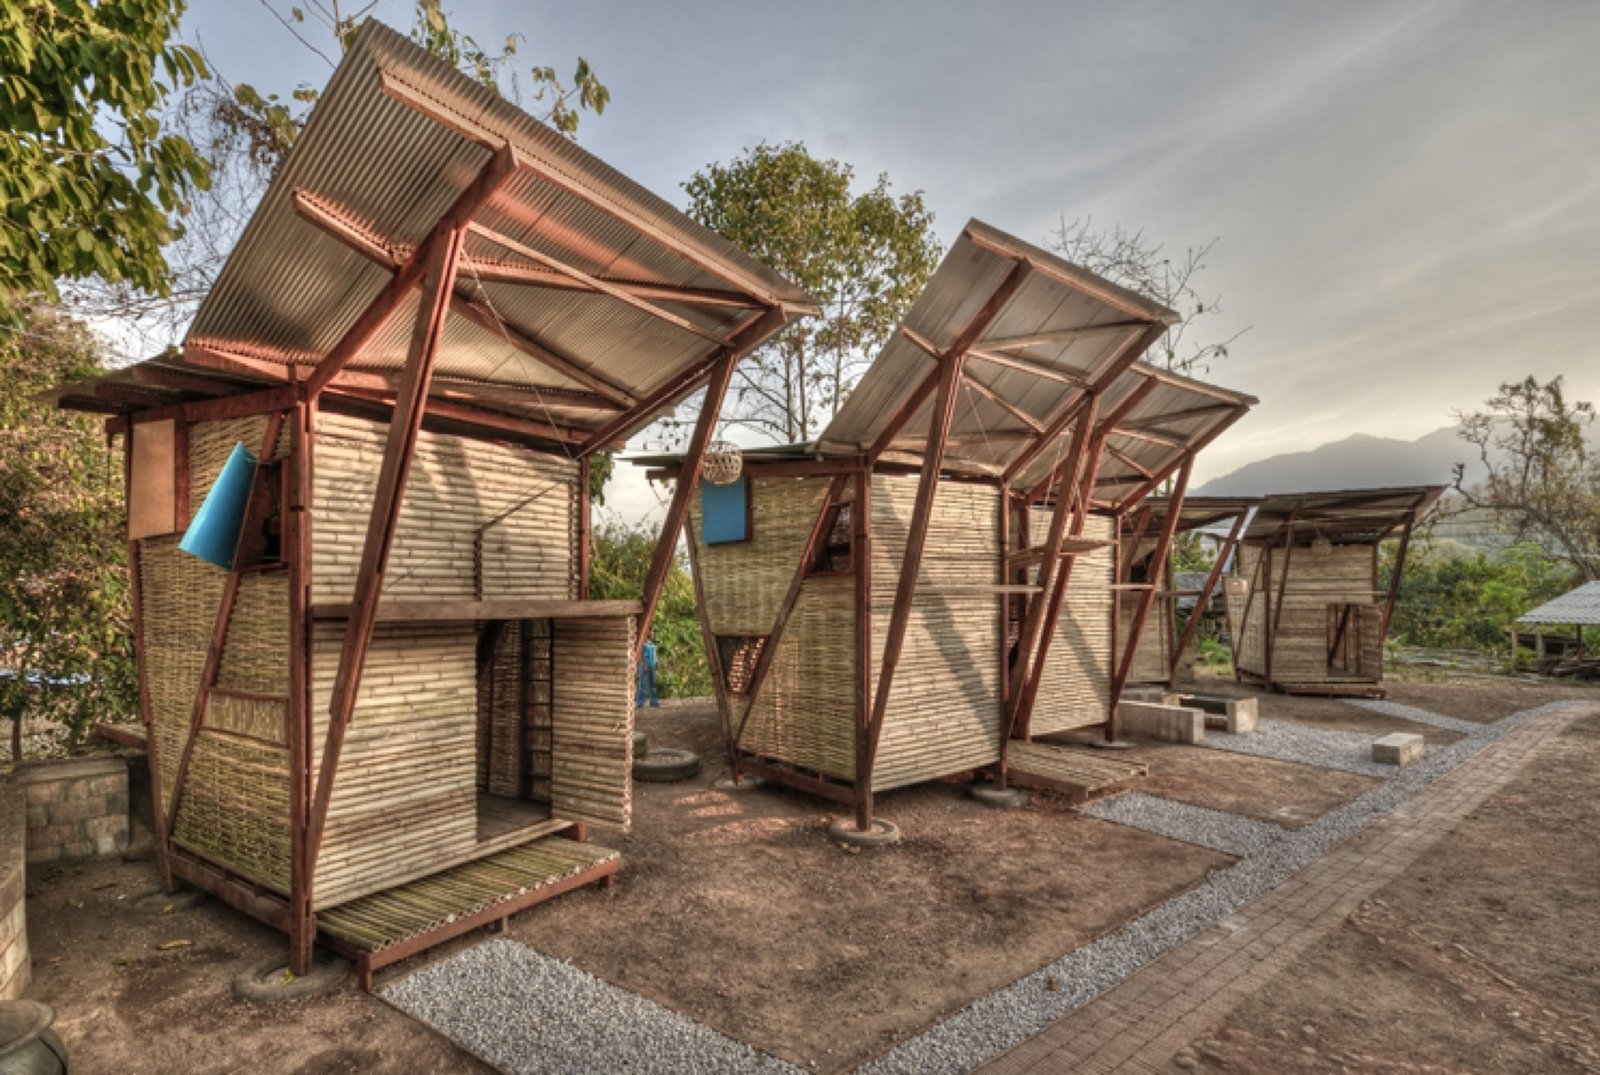 Soe Ker Tie Houses in Thailand / Photo by Pasi Aalto / Tyin Tegnestue  Photo 10 of 12 in Slow Architecture